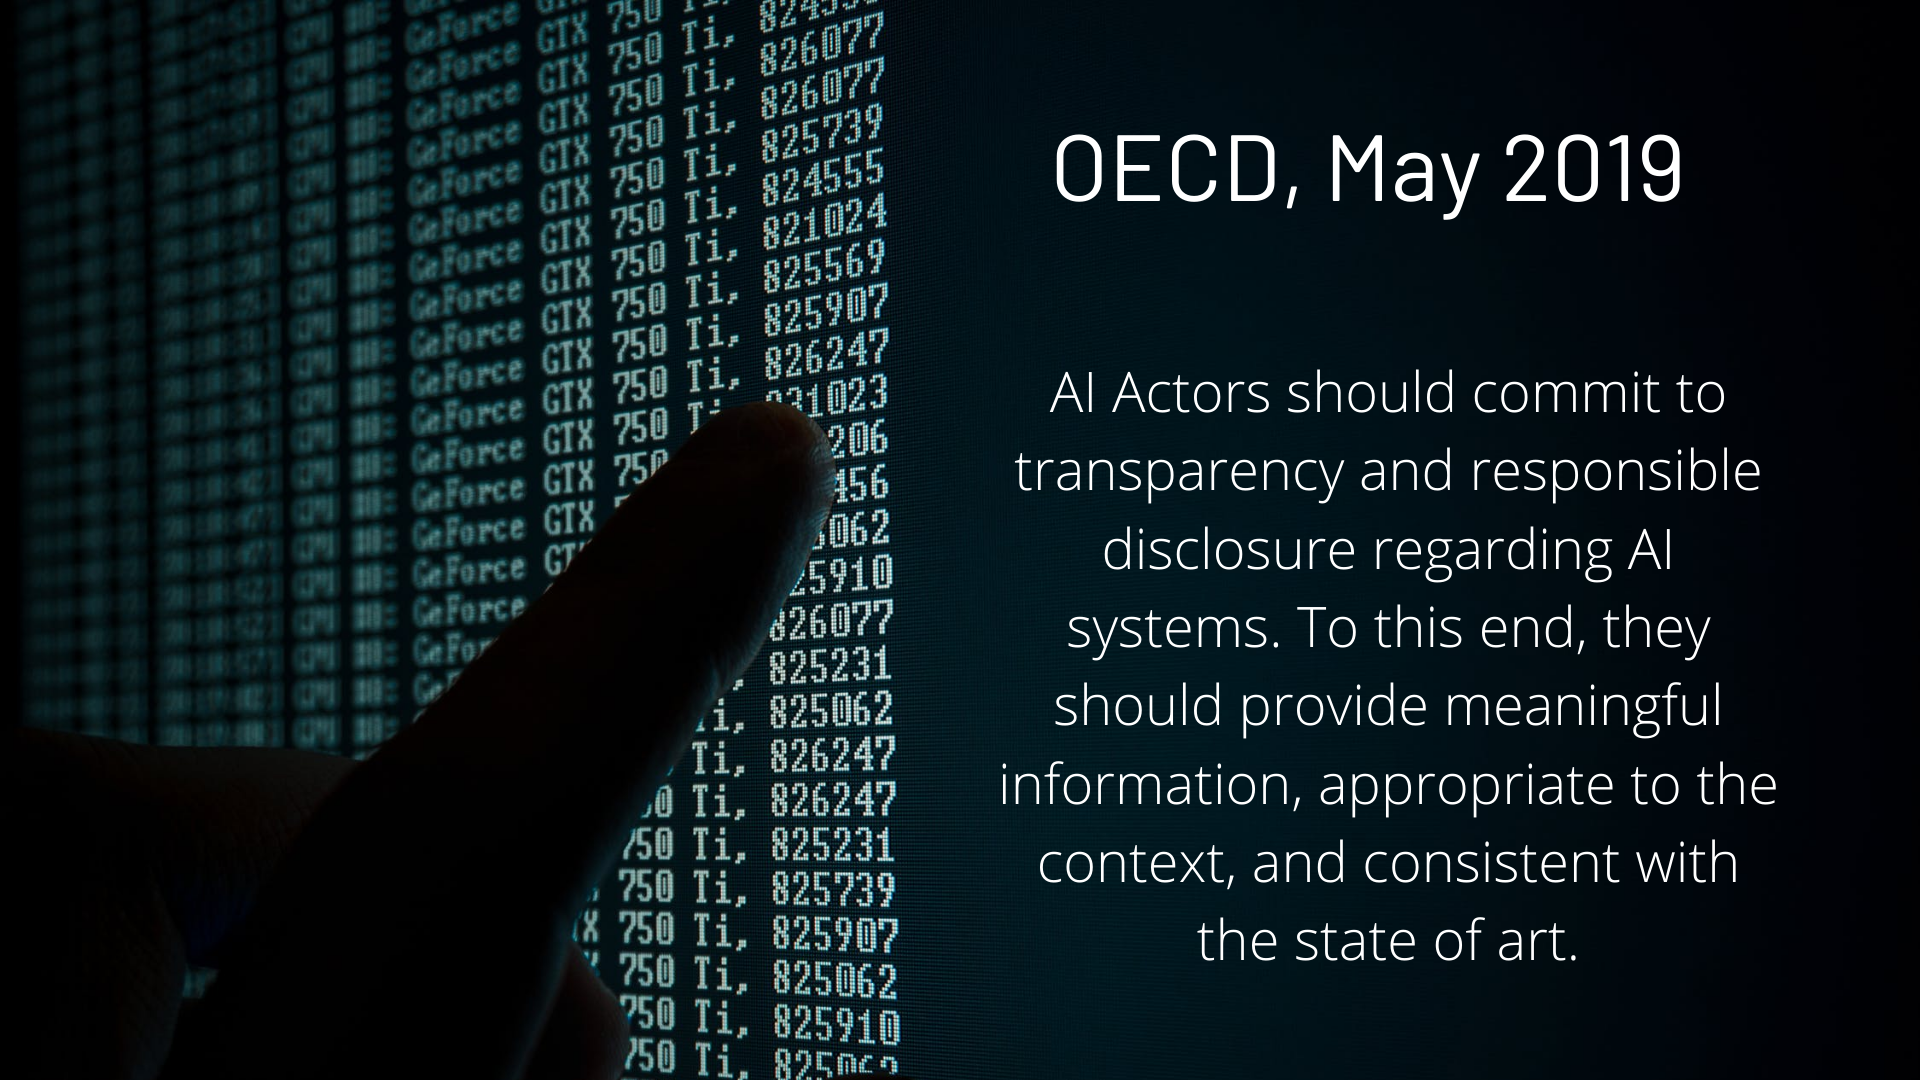 AI Actors should commit to transparency and responsible disclosure regarding AI systems. To this end, they should provide meaningful information, appropriate to the context, and consistent with the state of art. - OECD, May 2019